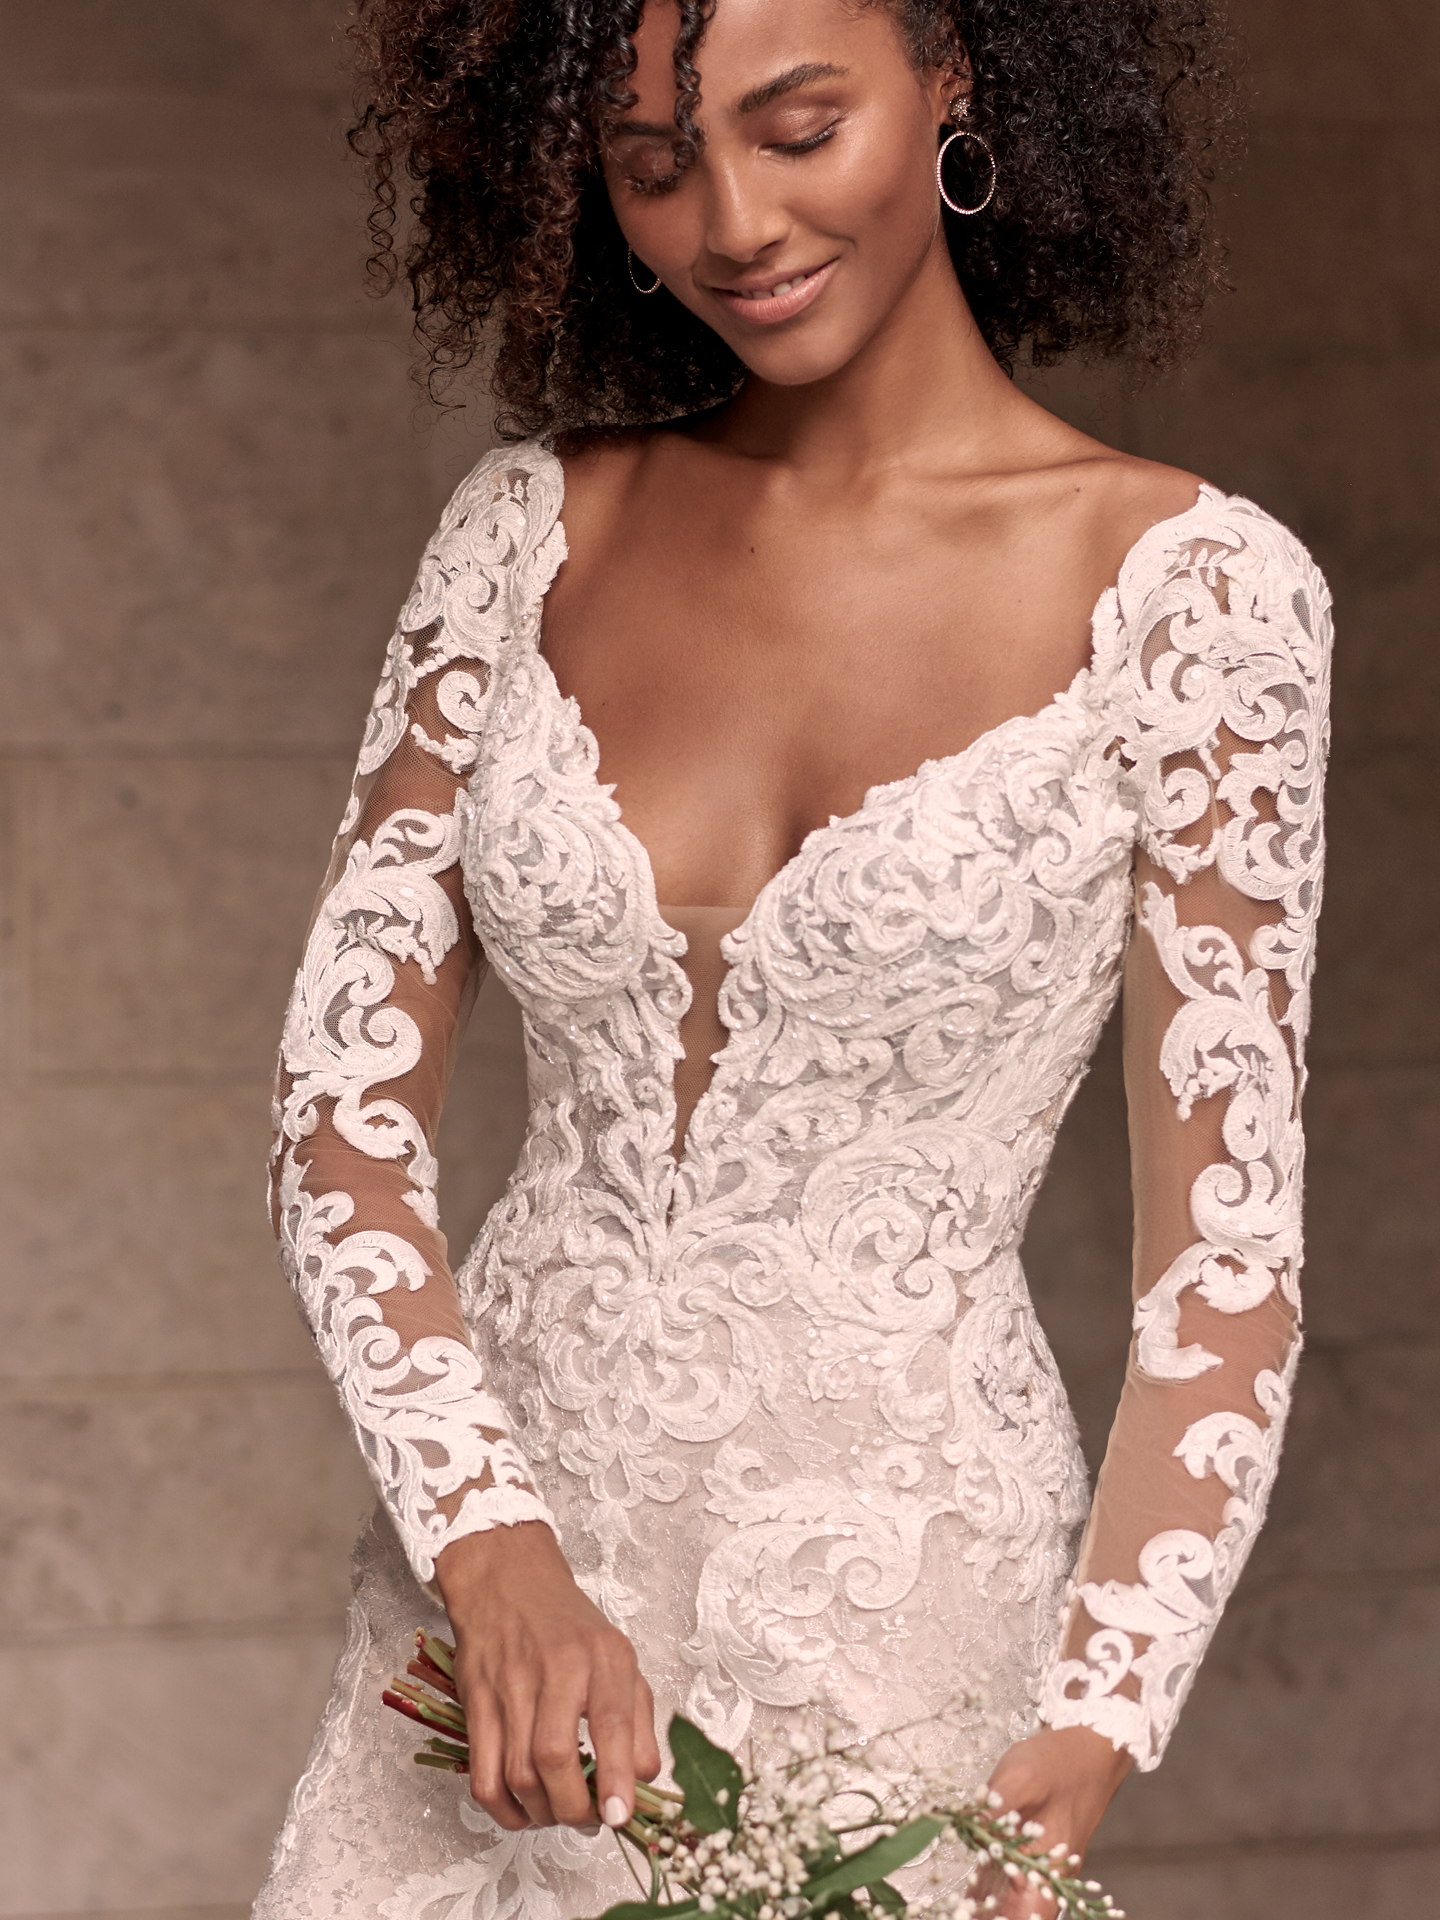 Black Model Wearing Sparkly Lace Sheath Bridal Gown Called Tuscany Royale by Maggie Sottero